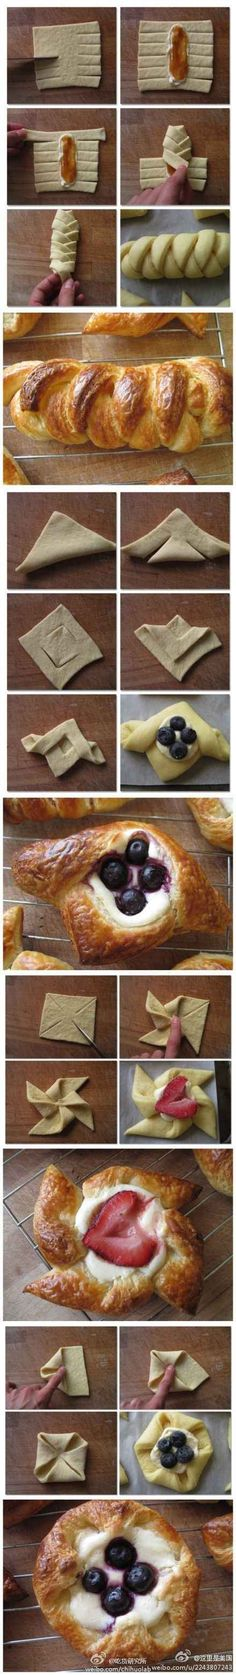 Pastry Folding Hacks | 40 Creative Food Hacks That Will Change The Way You Cook